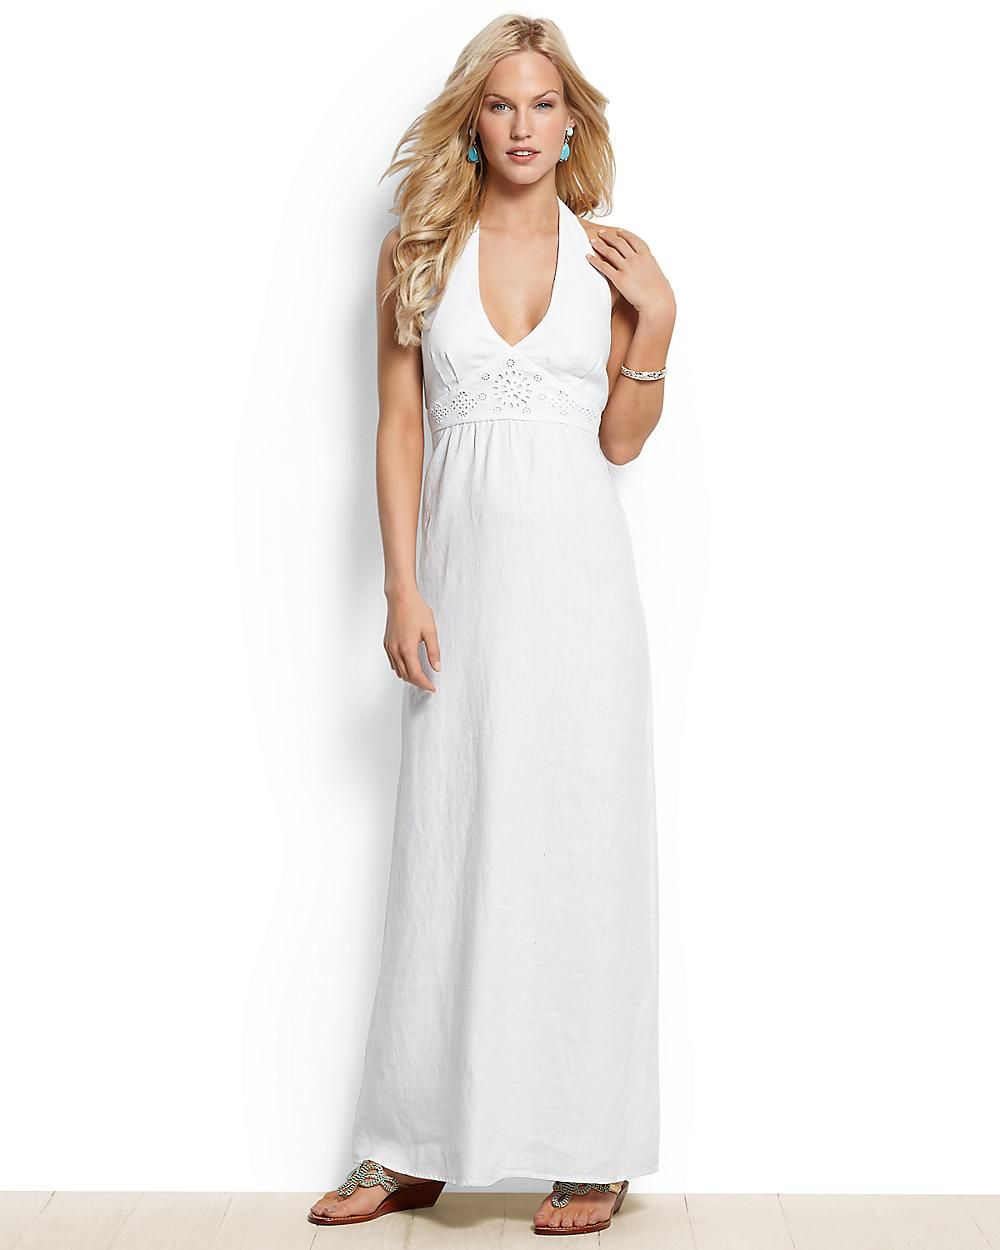 Two Palms Halter Maxi Dress, Tommy Bahama. This Would Make